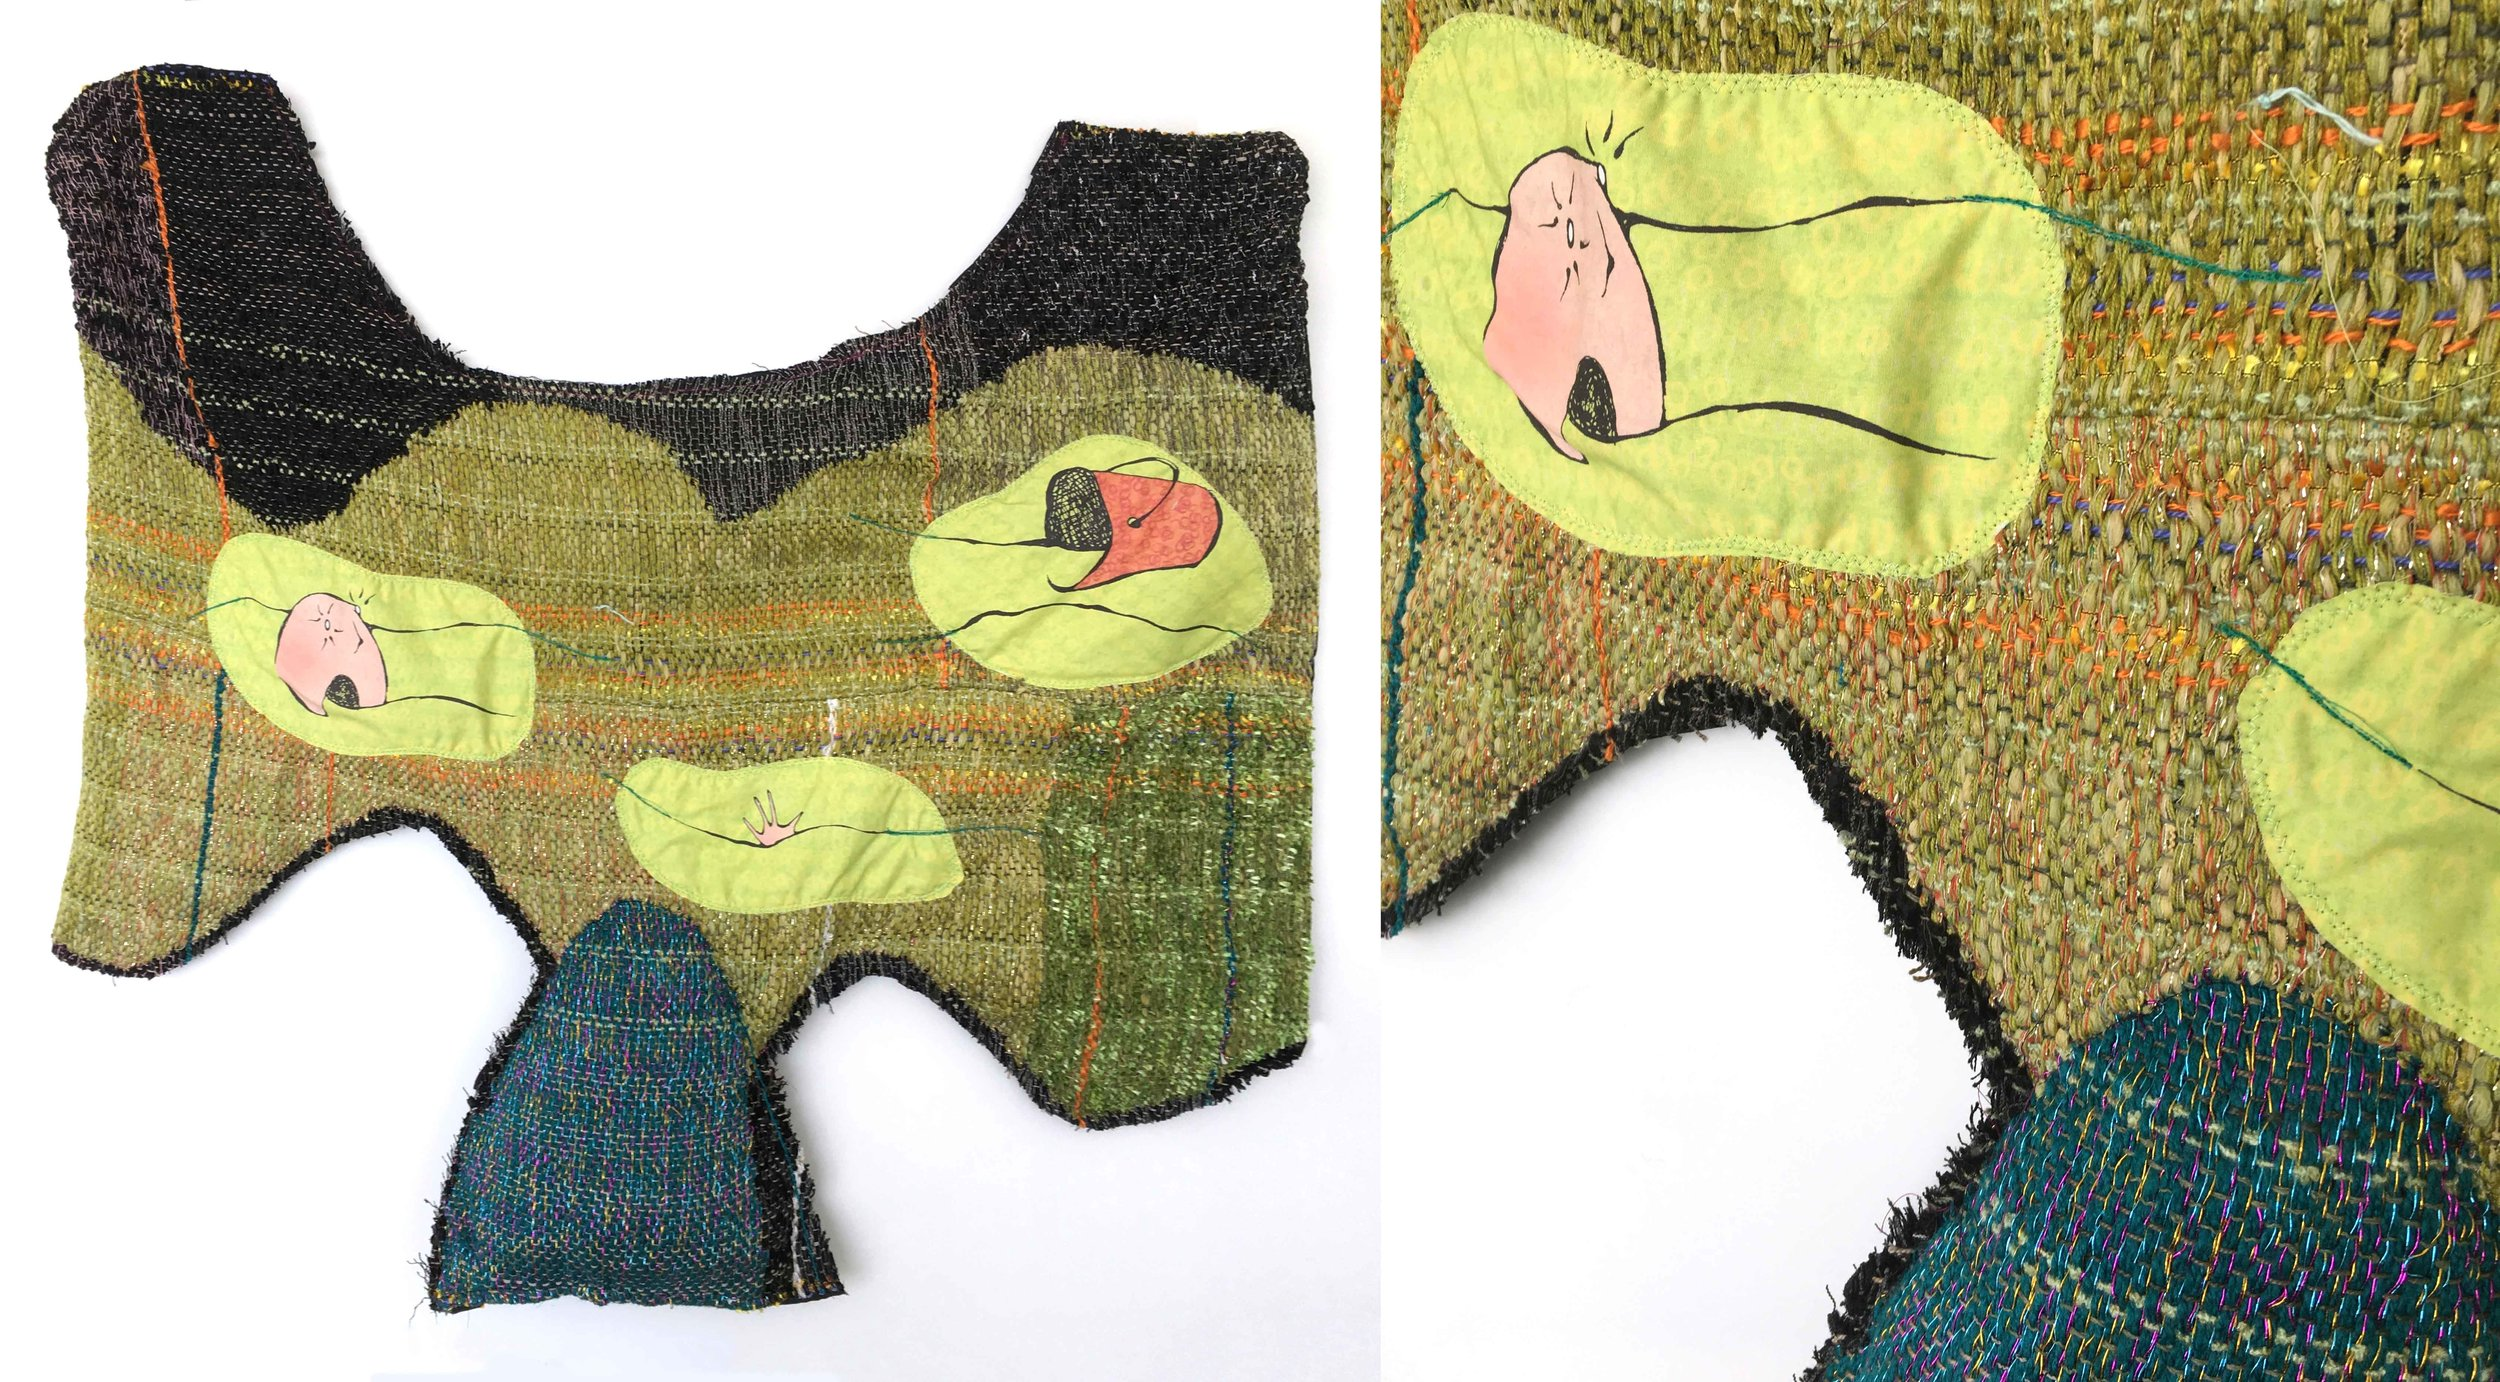 """Drowning My Sorrows (2)  h: 25"""" x w: 34"""" hand-woven and machine-made fabric, embroidery, inkjet prints, fleece, wire 2017"""